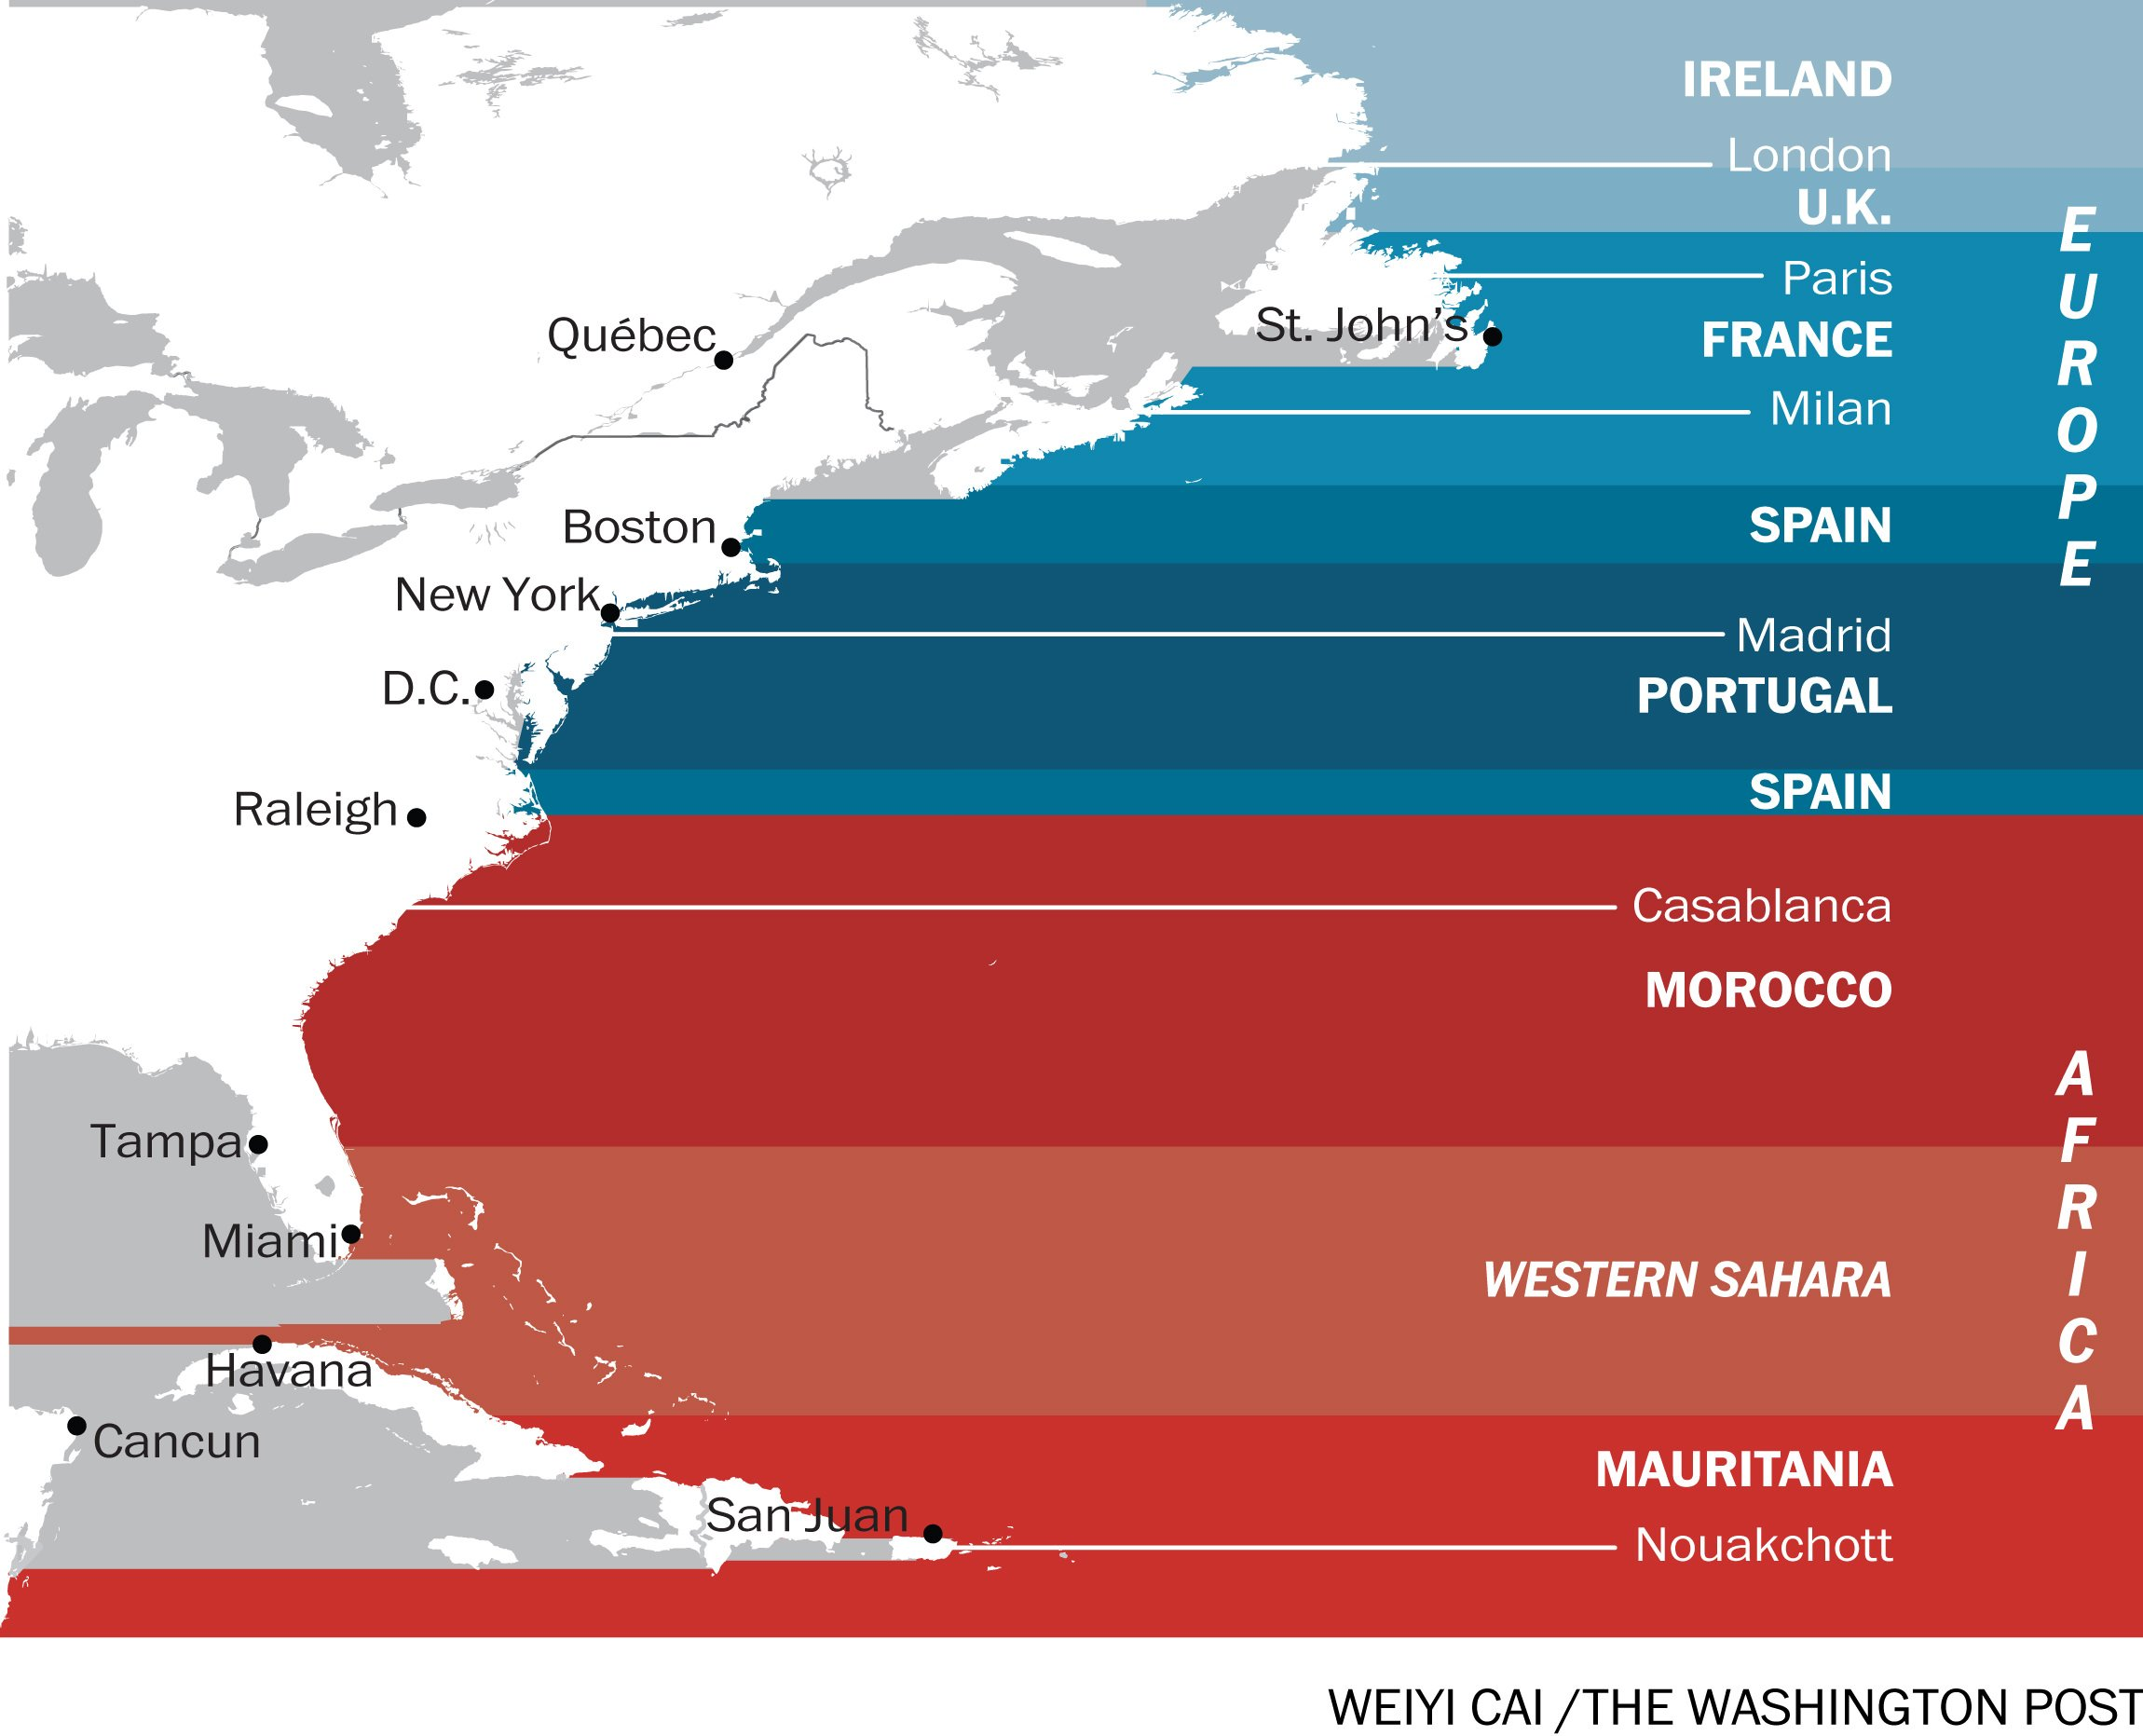 whats across the ocean from the east cost of north america